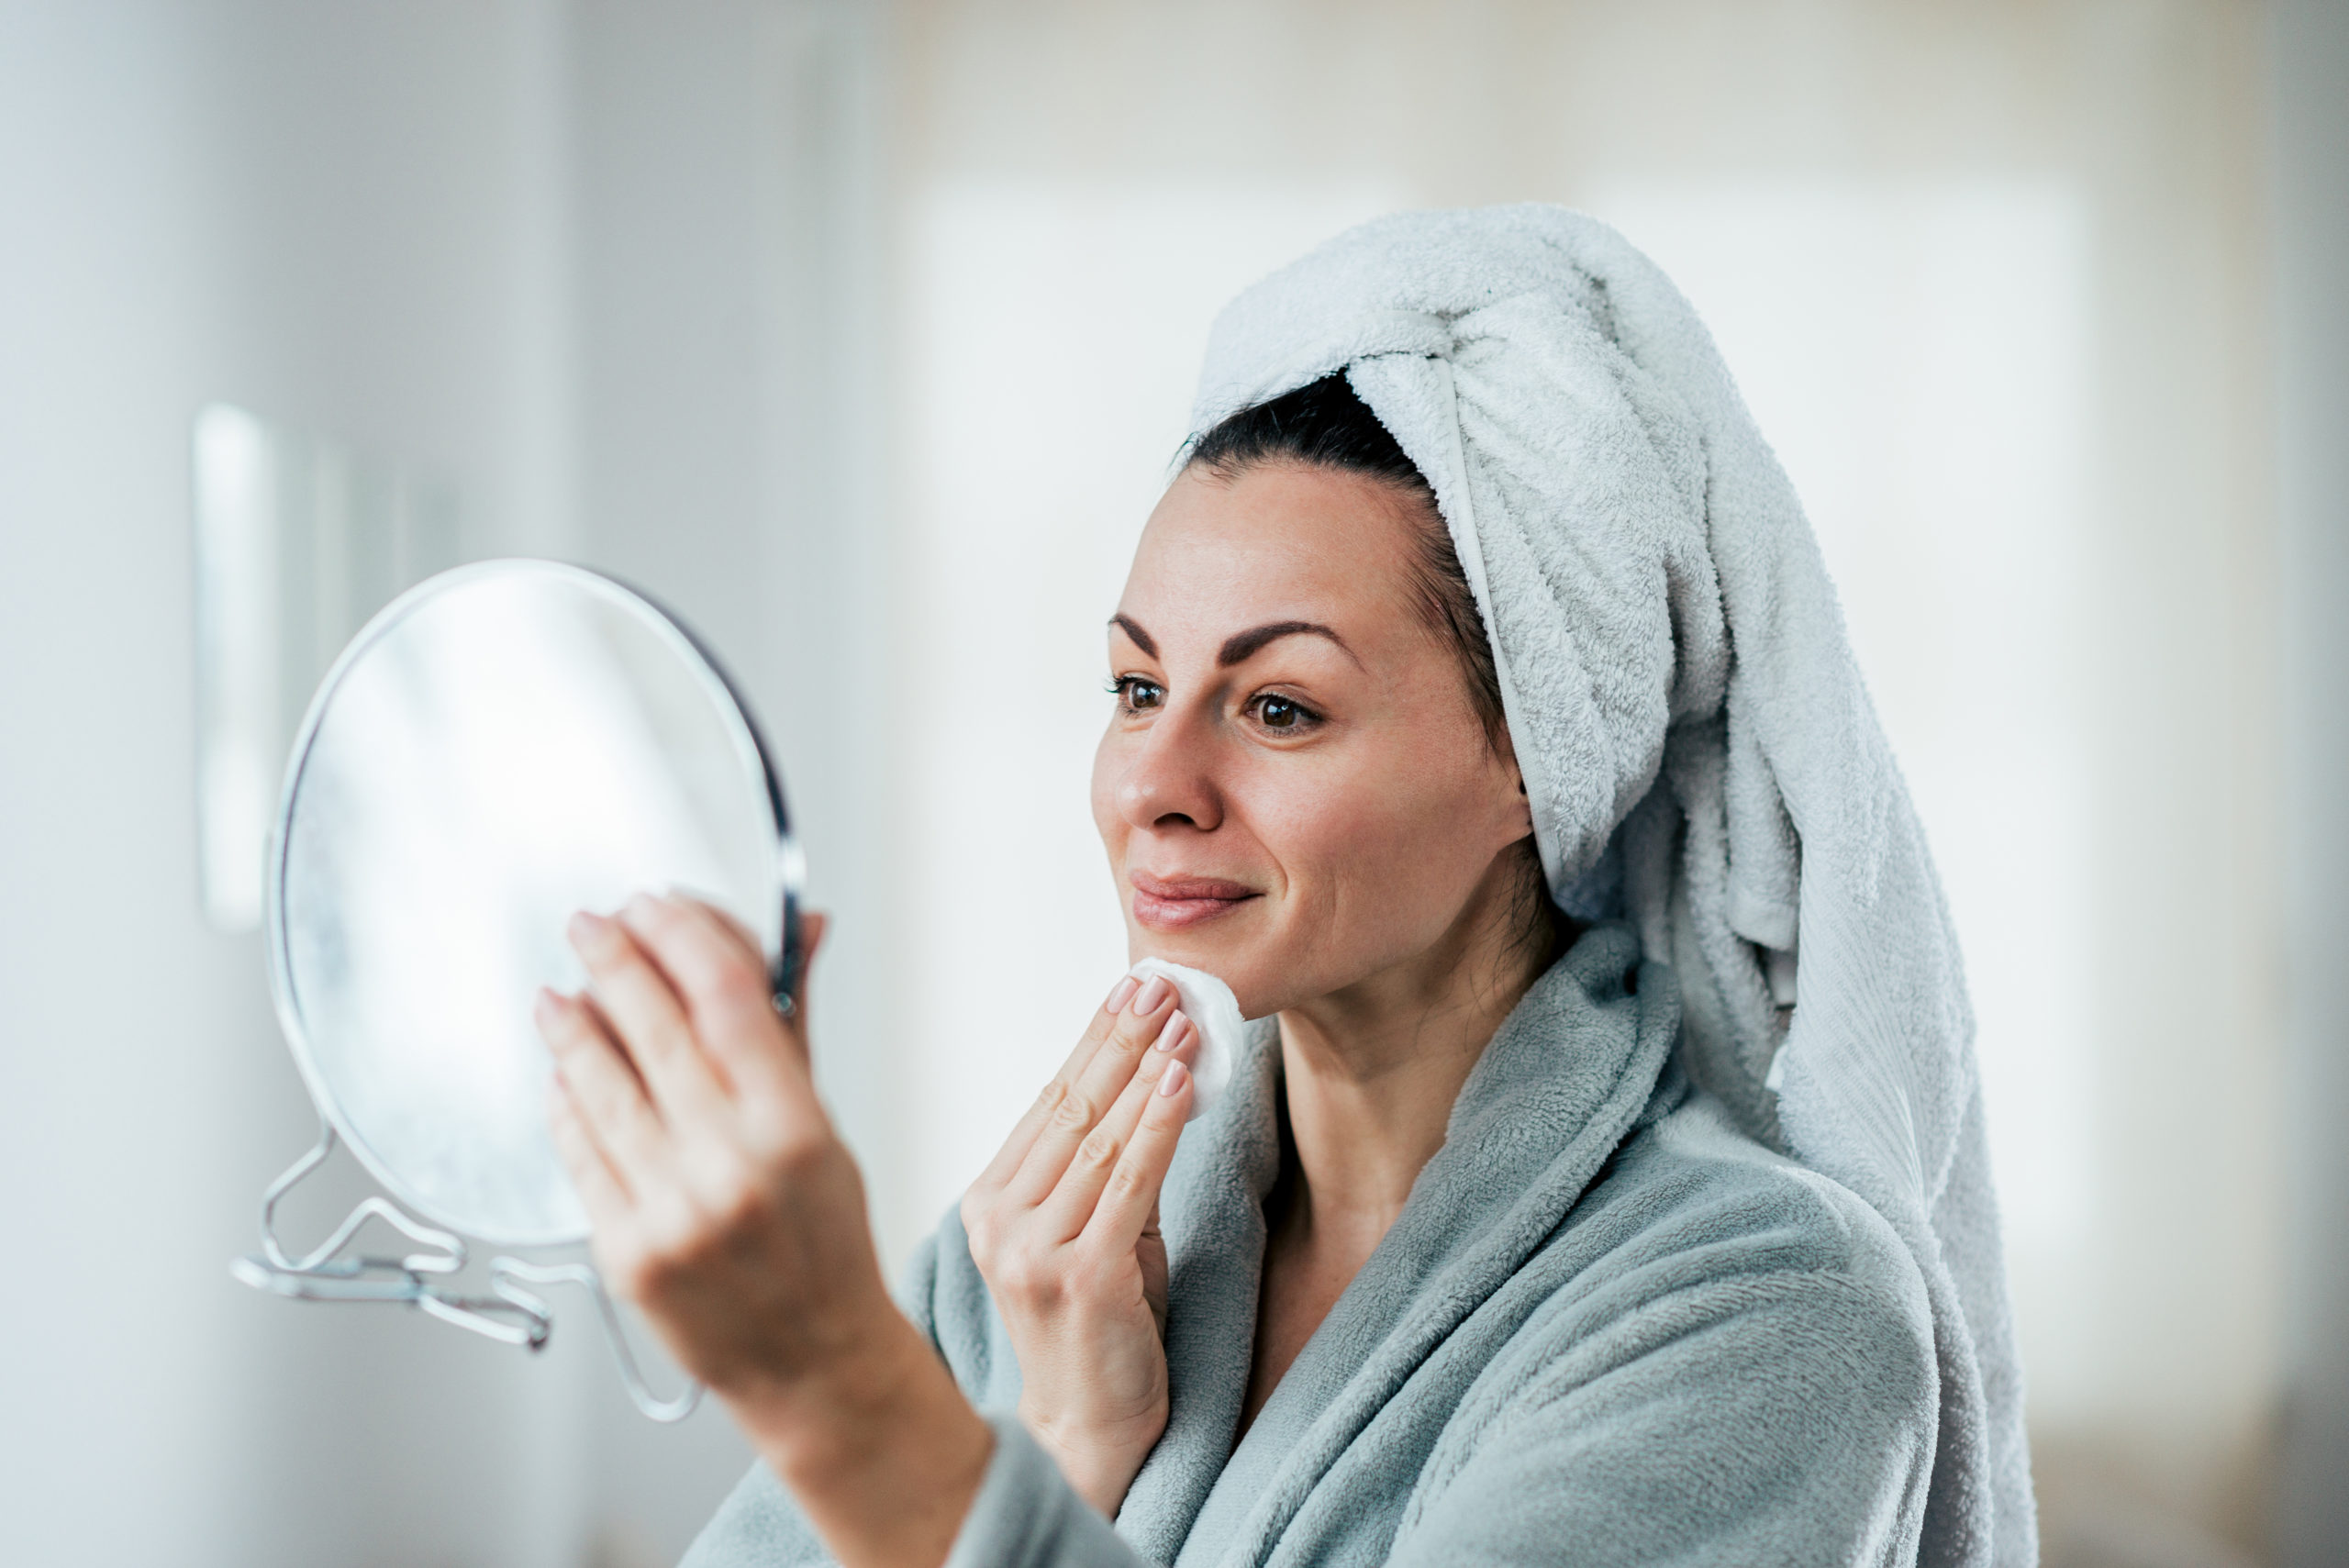 Beauty, hygiene and people concept. A picture of a woman cleaning her face.